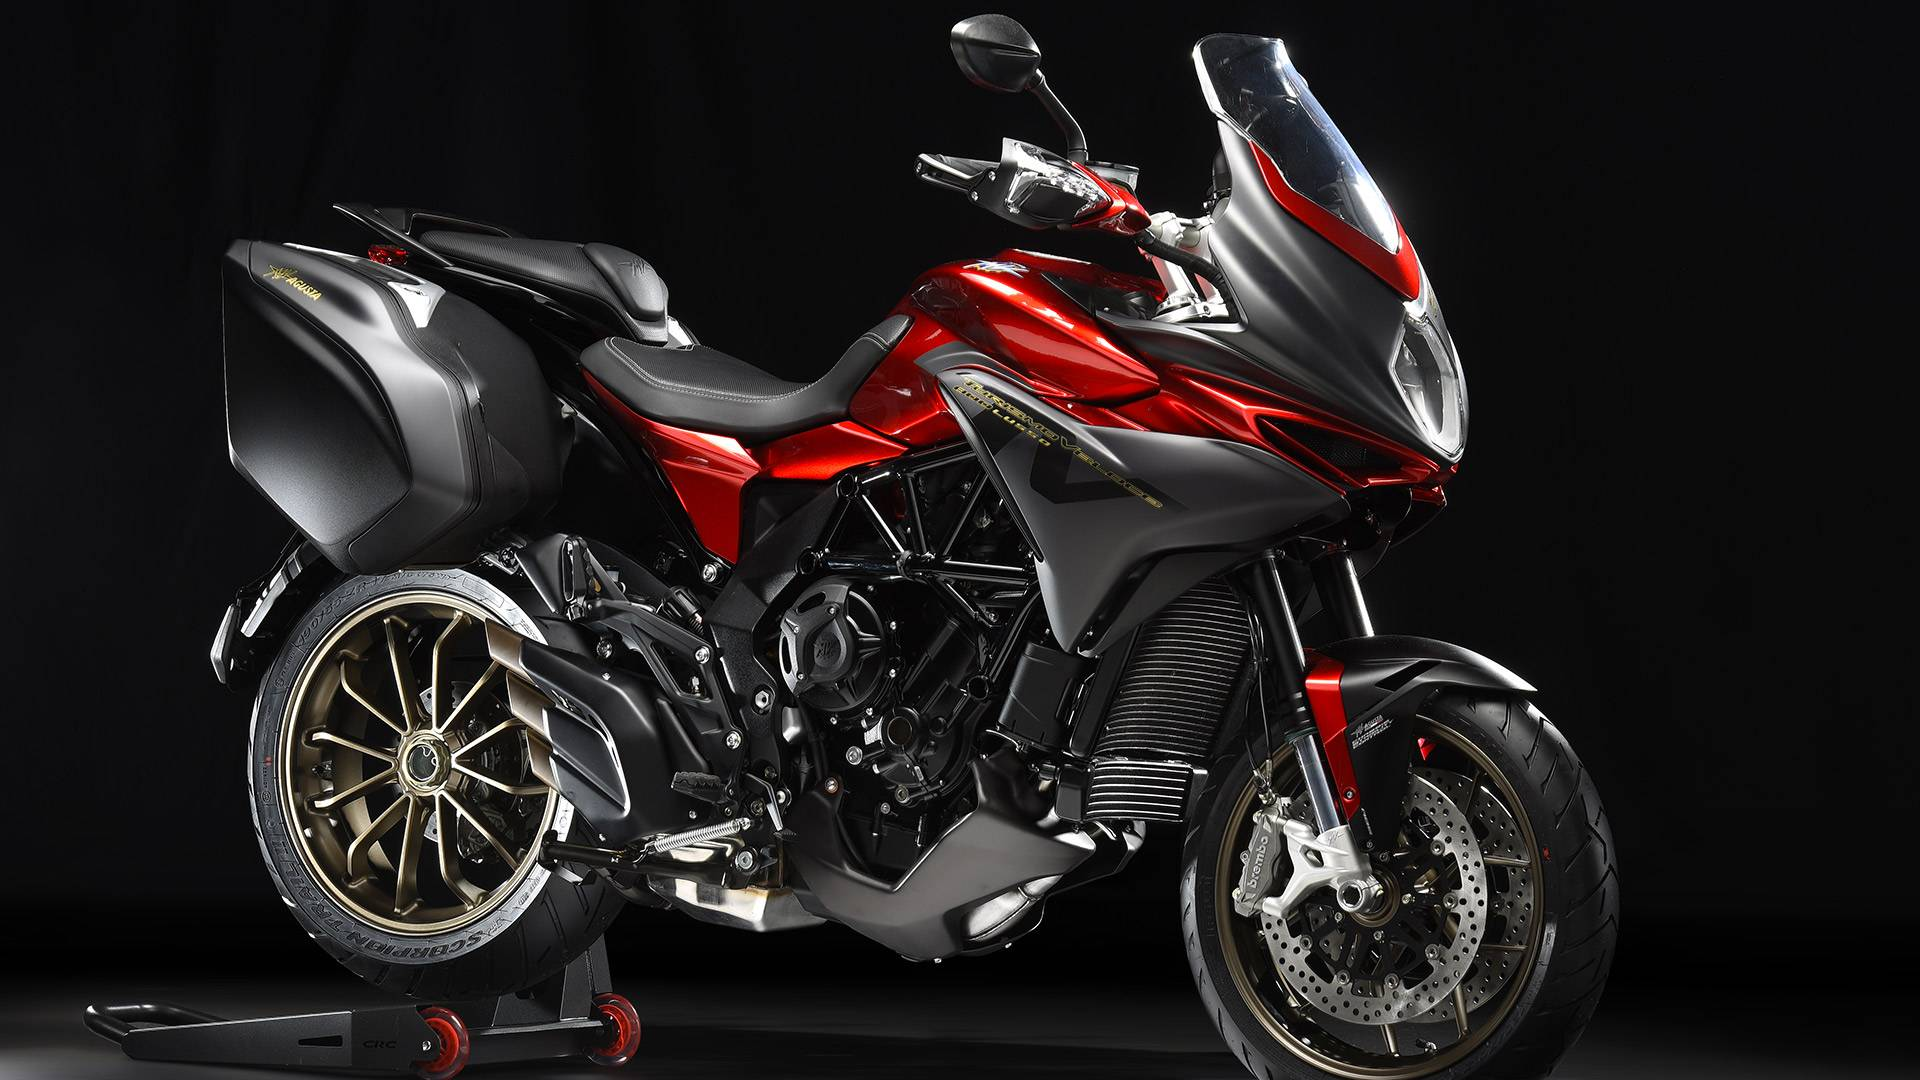 New 2019 MV Agusta Turismo Veloce Lusso Motorcycles In